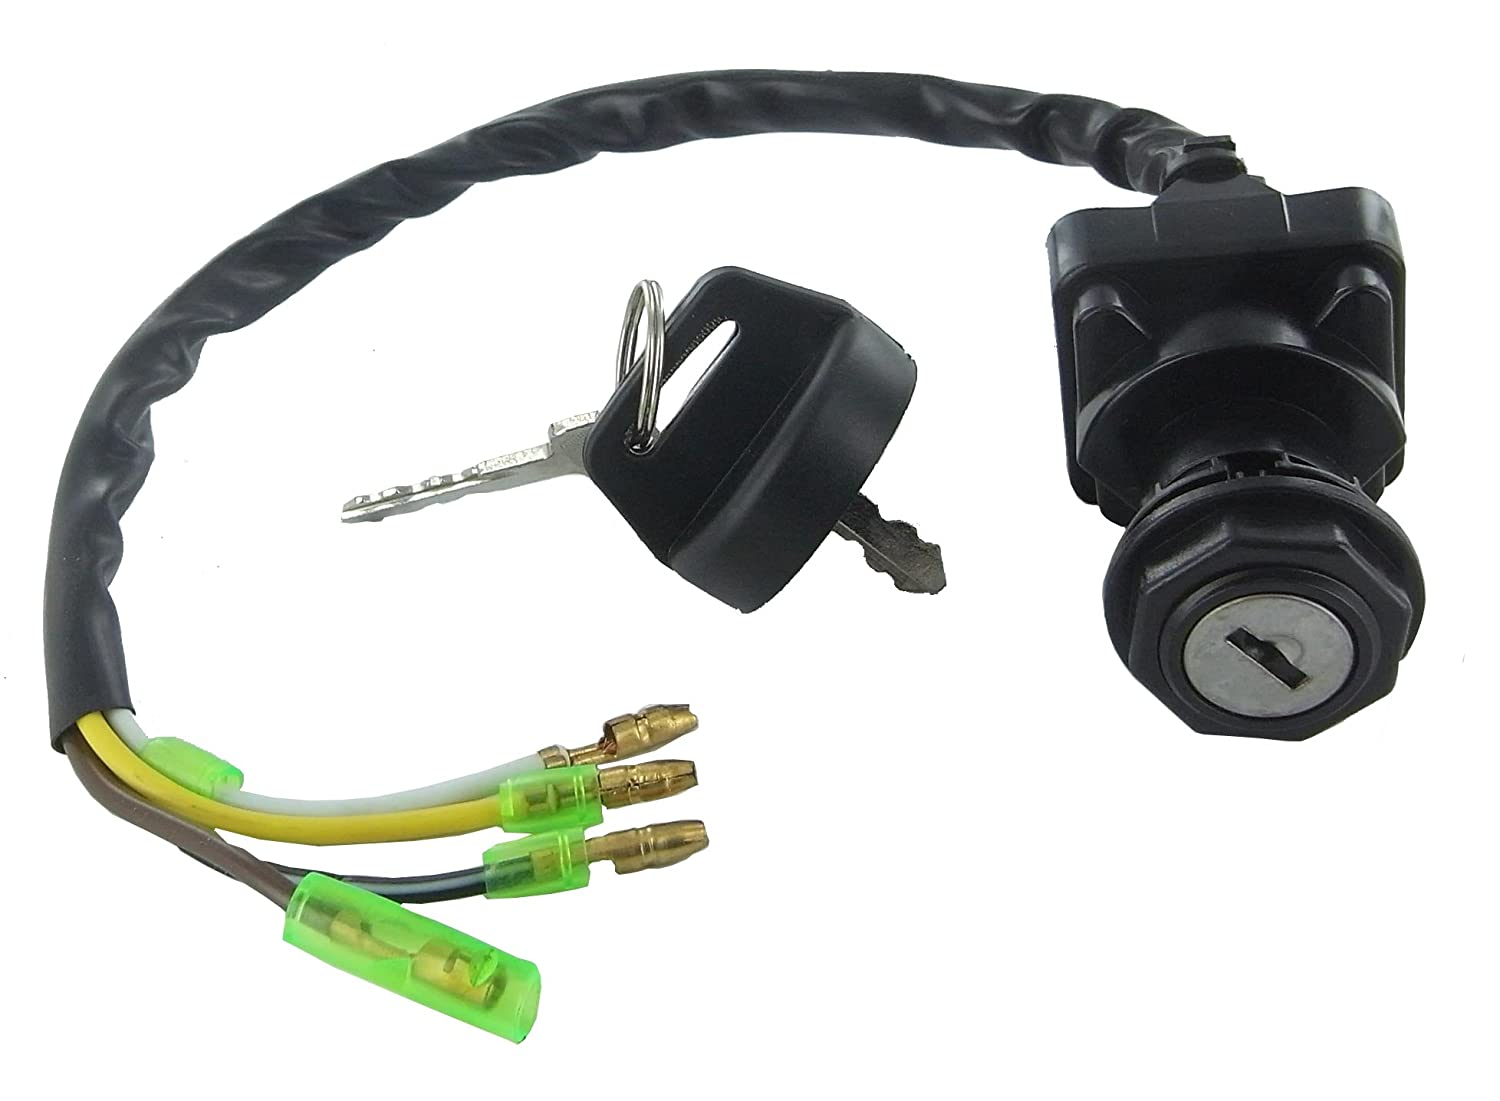 Amazon ignition key switch kawasaki klf220 bayou 220 1988 1989 amazon ignition key switch kawasaki klf220 bayou 220 1988 1989 1990 1991 1992 1993 1994 1995 atv switch new automotive asfbconference2016 Images